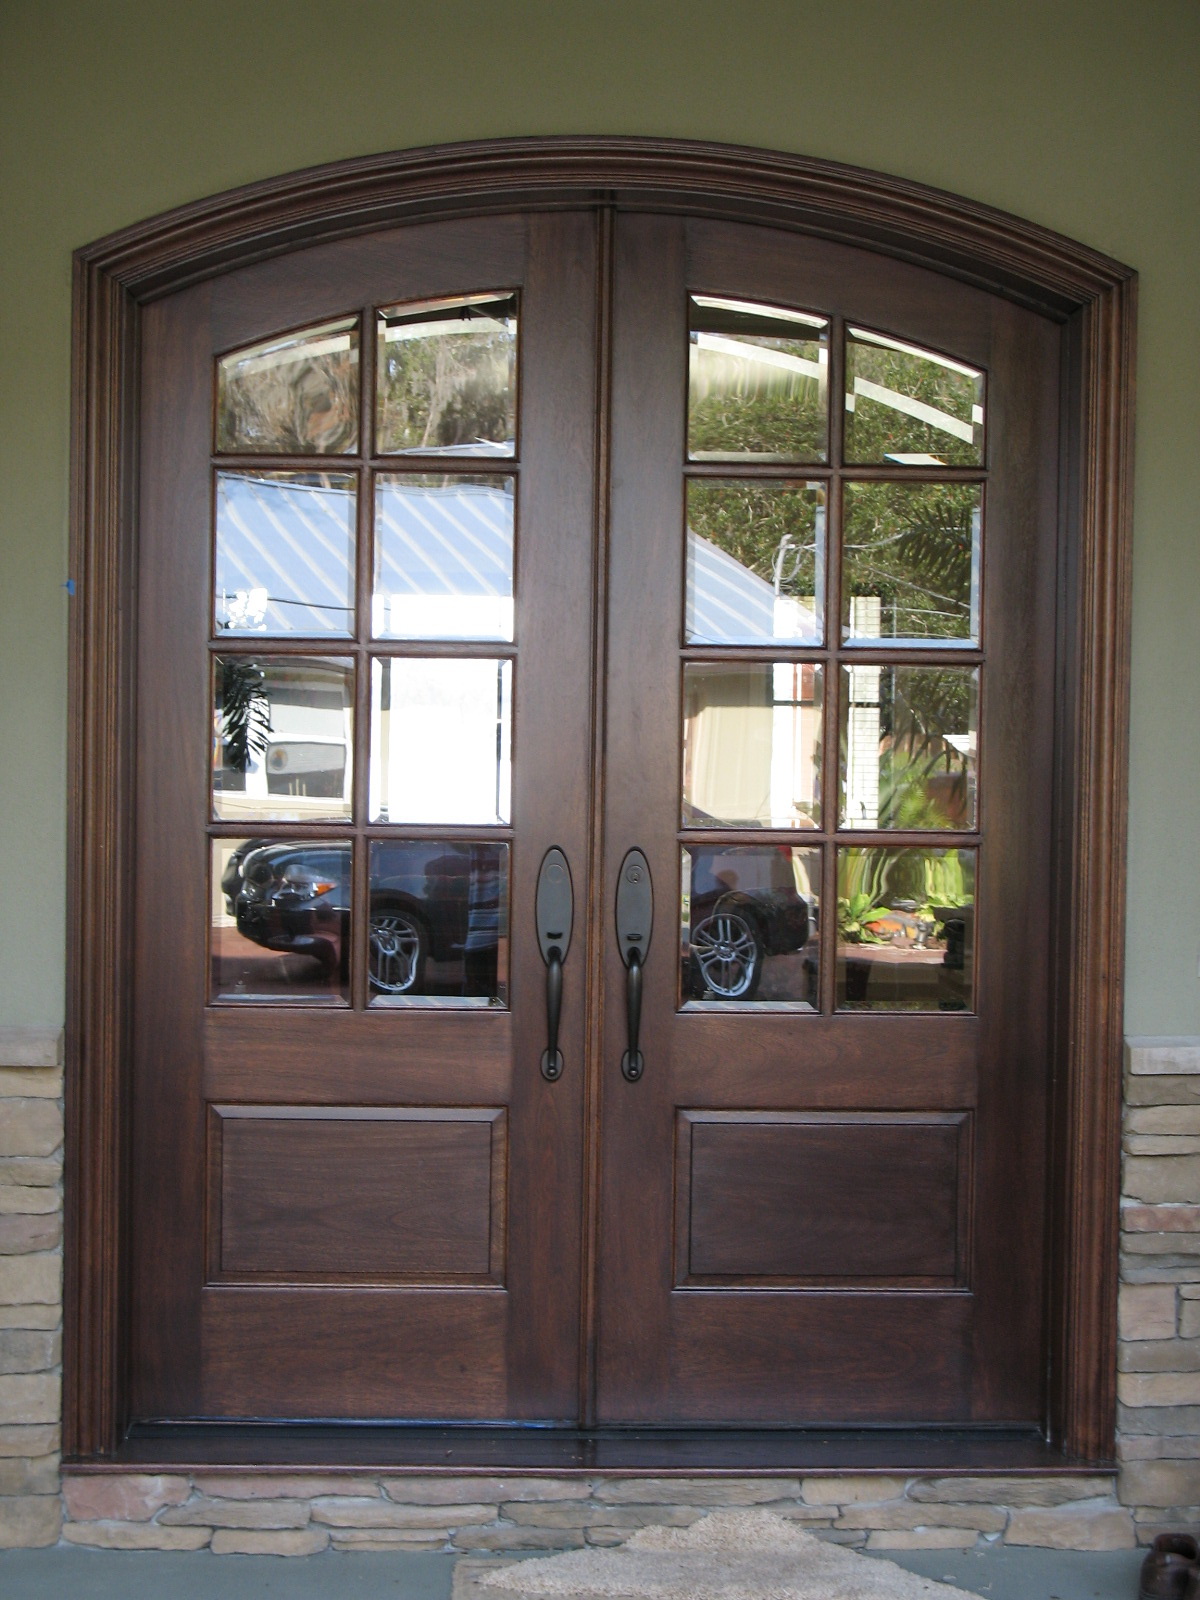 1000 images about front doors on pinterest for Front door with window on top